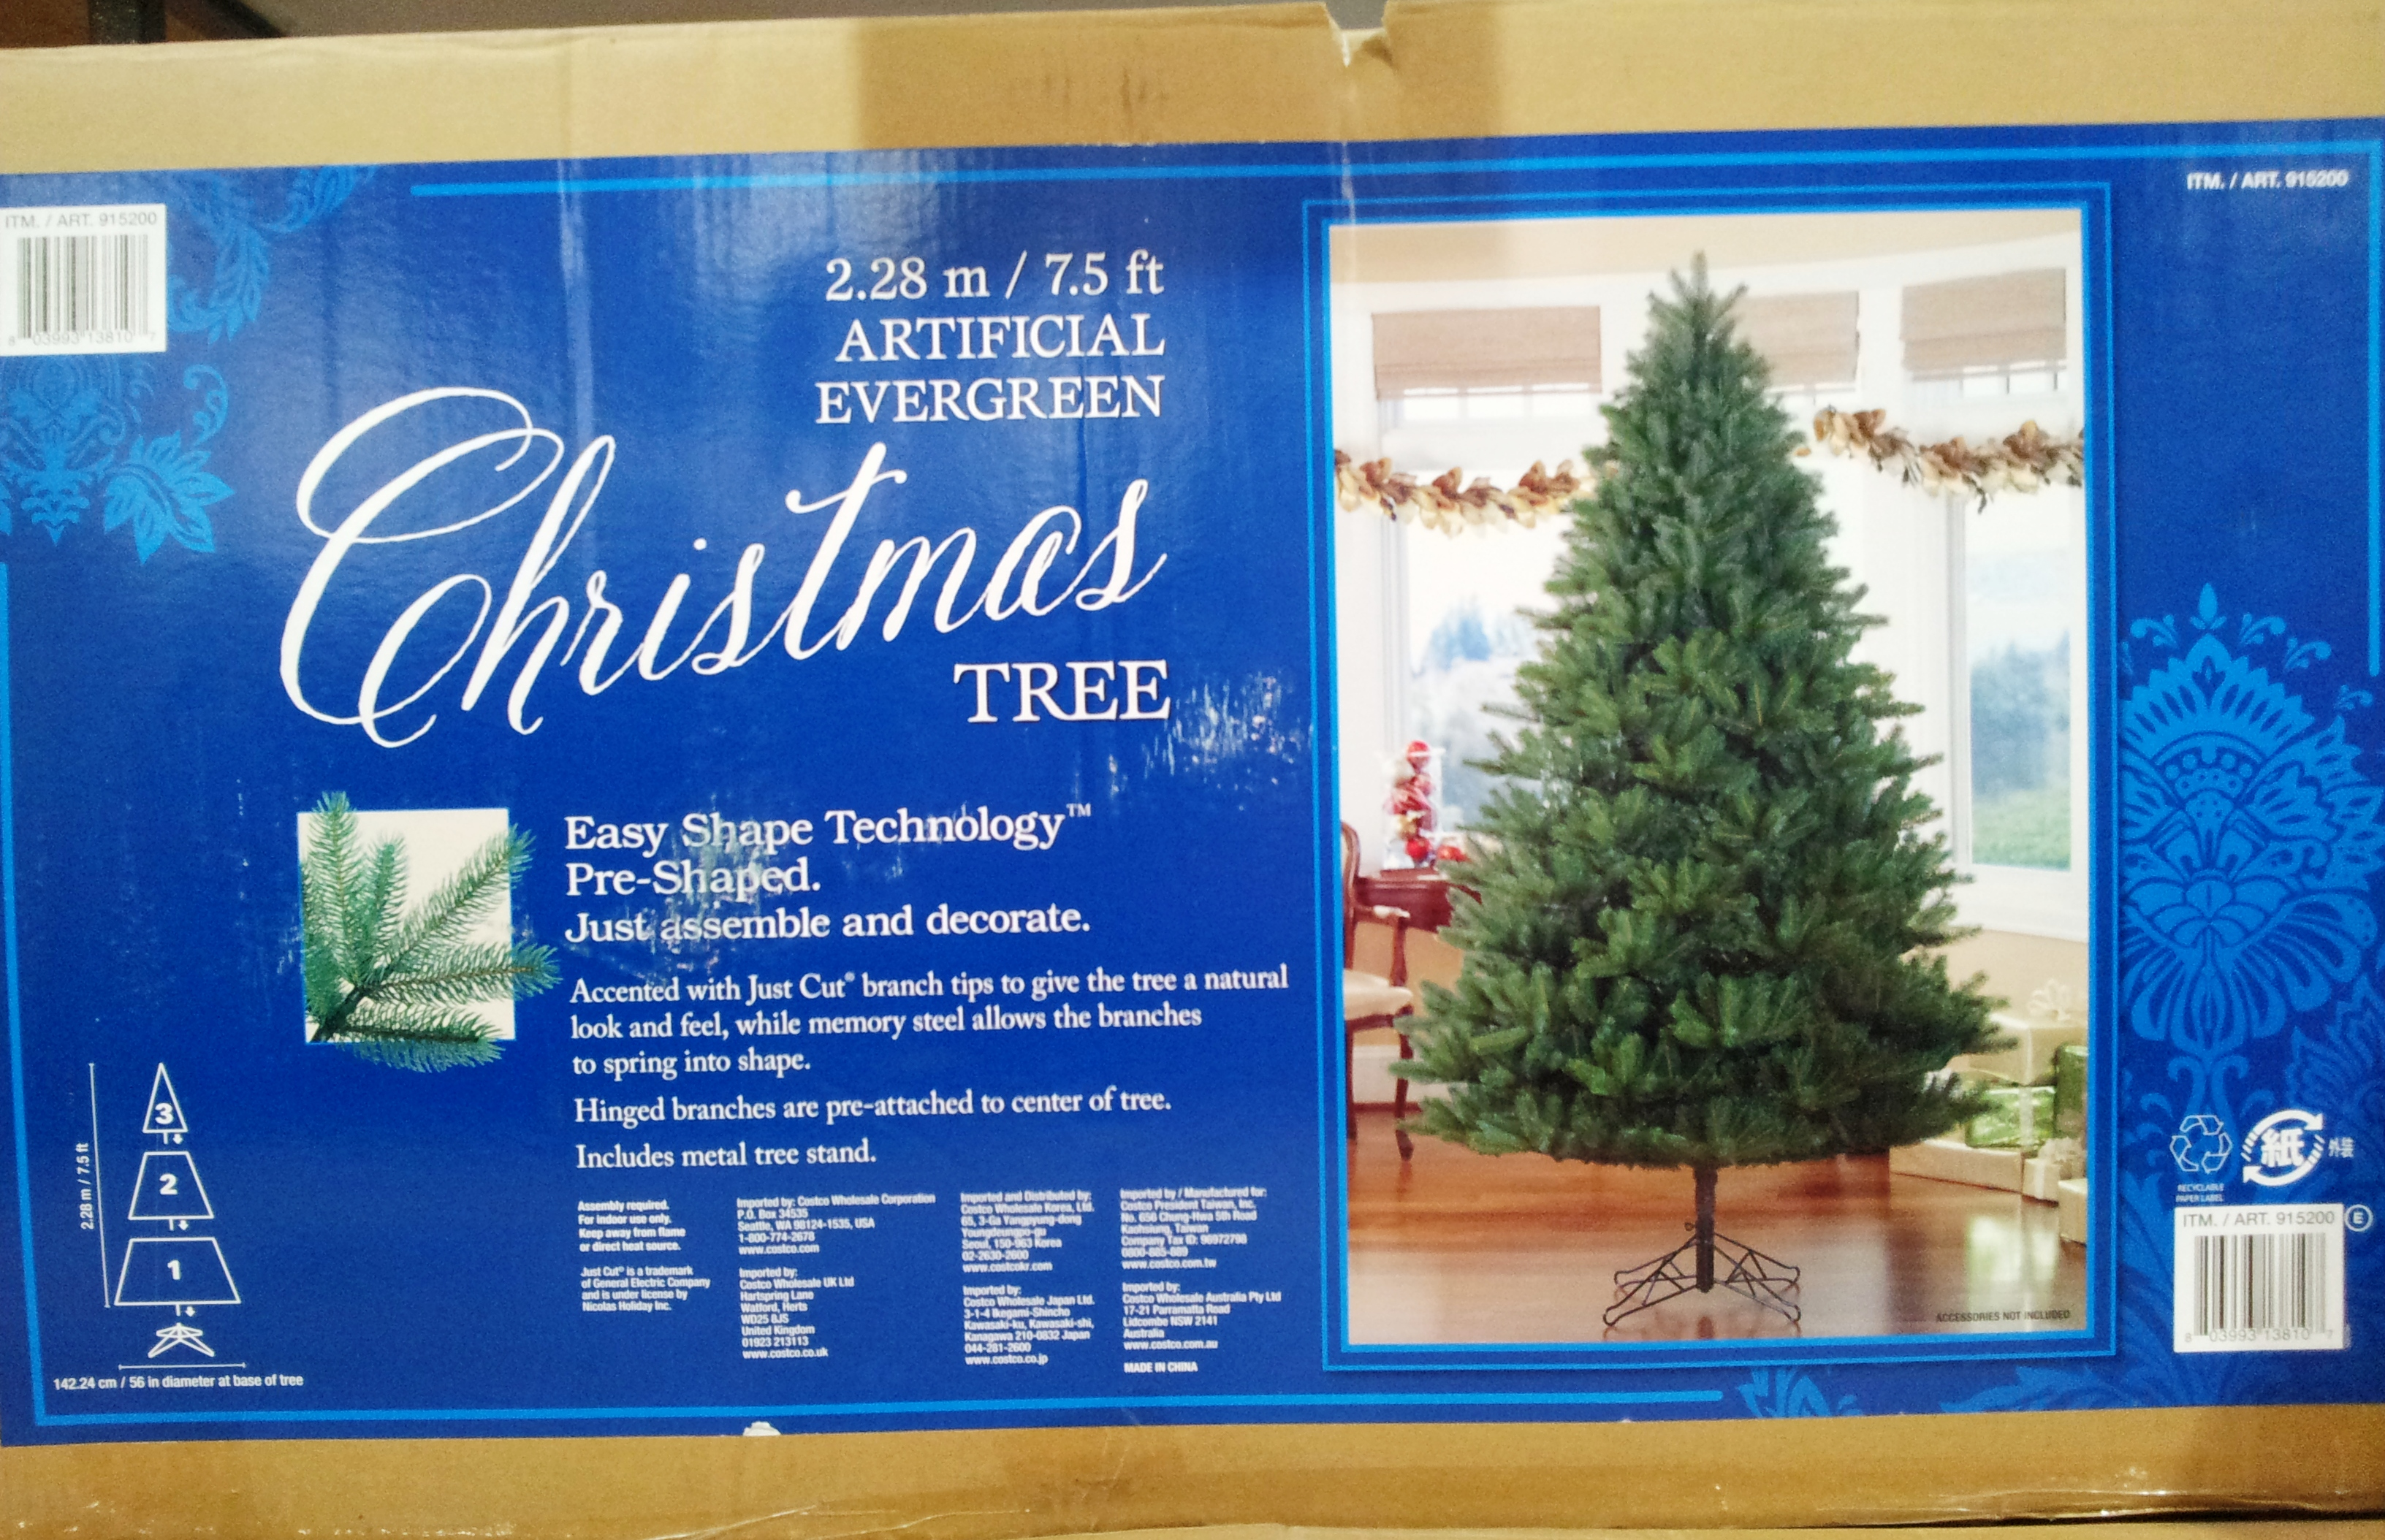 item no4 is a whopping 274m 9ft christmas tree with a base spread of approx 16m diameter - Costco Christmas Decorations 2017 Australia